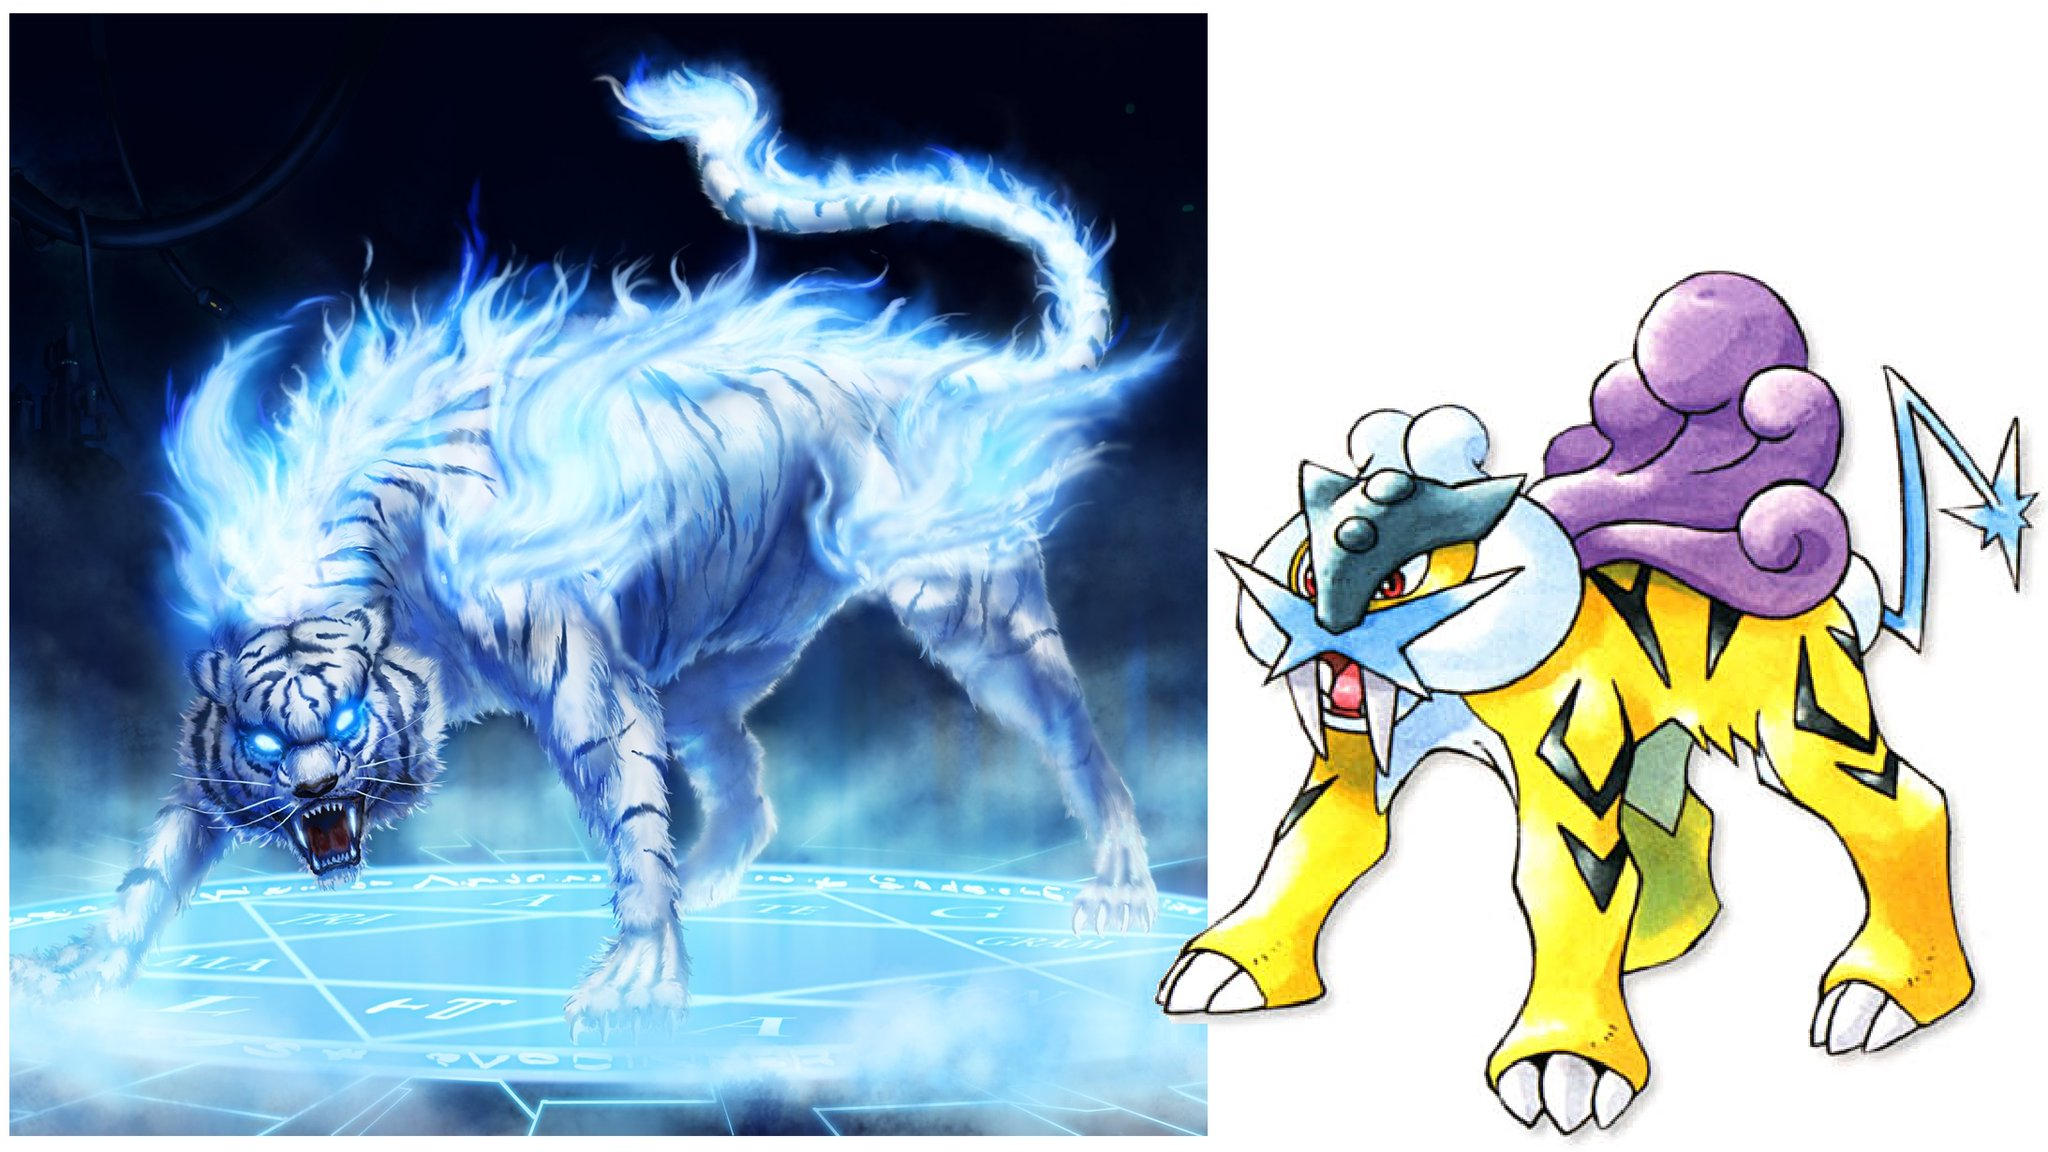 Dr Lava S Lost Pokemon On Twitter Raikou Origins Raikou Draws Inspiration From Japanese Mythology S Thunder Beast Raiju Raiju Can Take Many Forms Including Blue Wolves Tigers According To Legend Raiju Likes A collection of the top 45 ryzen wallpapers and backgrounds available for download for free. thunder beast raiju raiju